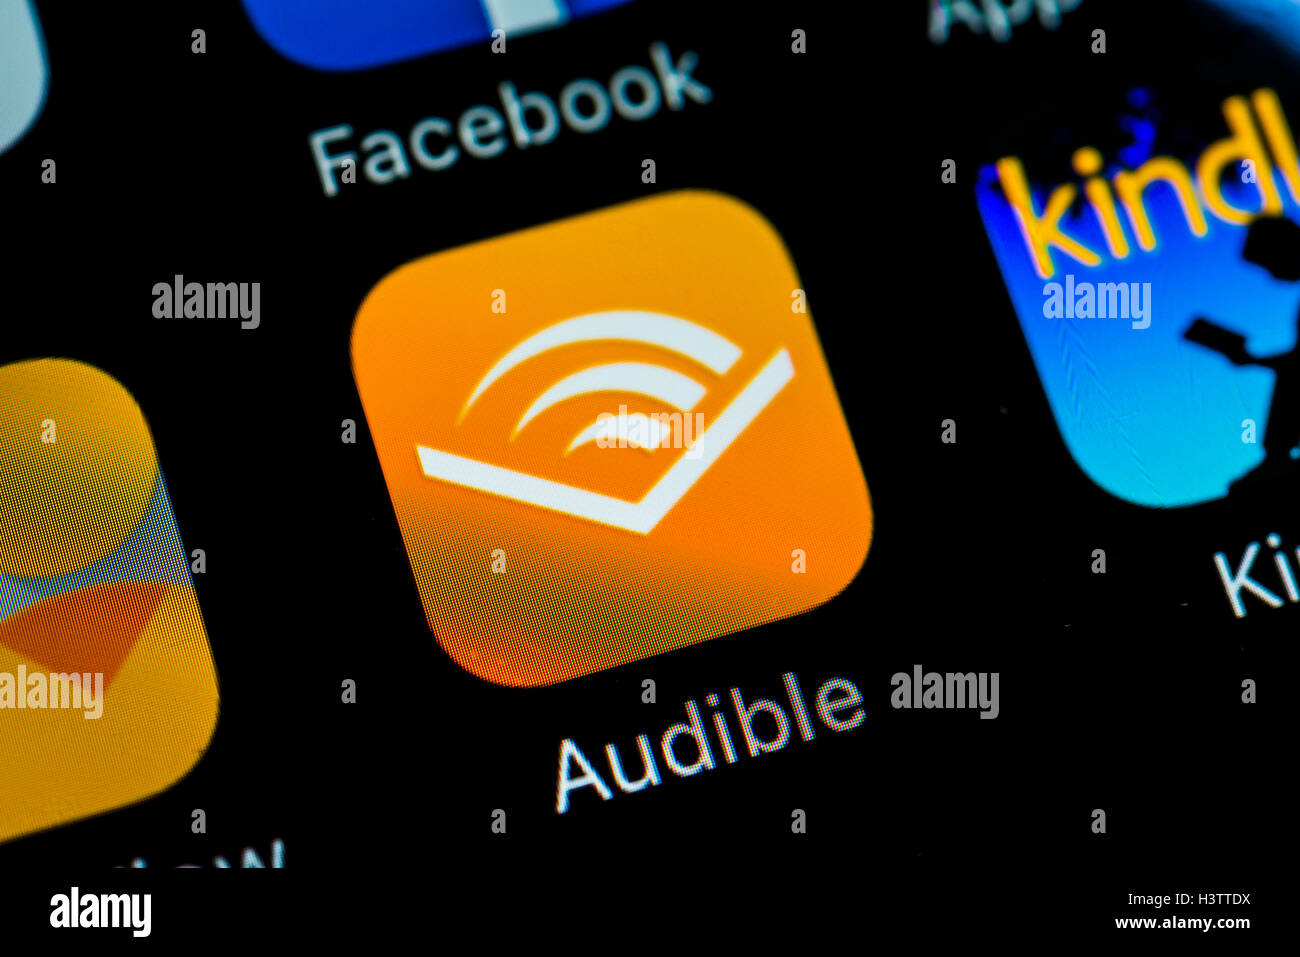 Smartphone screen with Audible app icon in detail - Stock Image